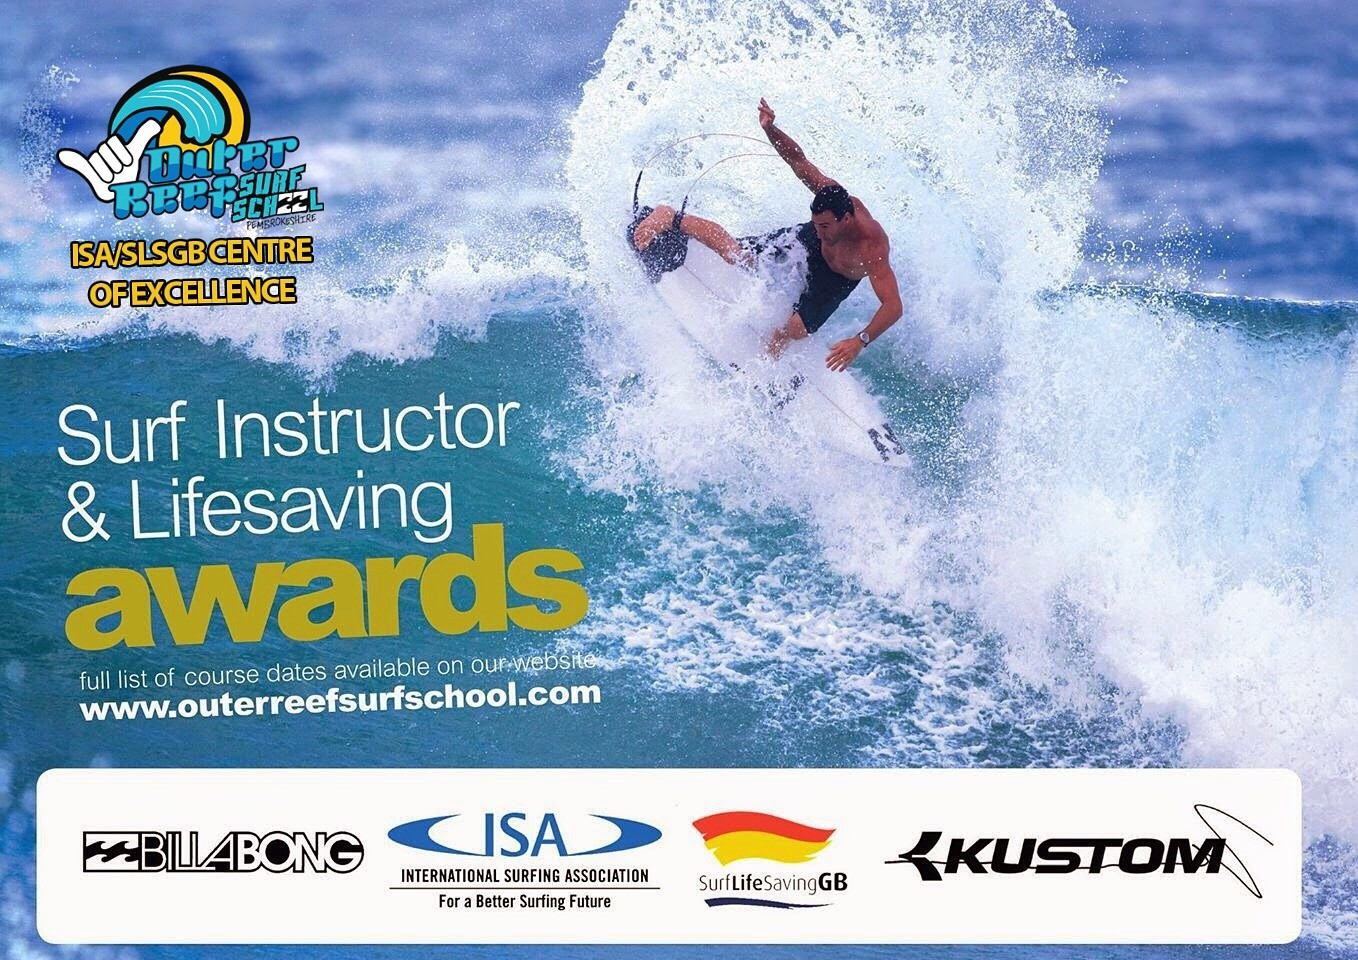 SLSGB Beach Lifeguard Courses Pembrokeshire, Wales | Surf Instructor Courses